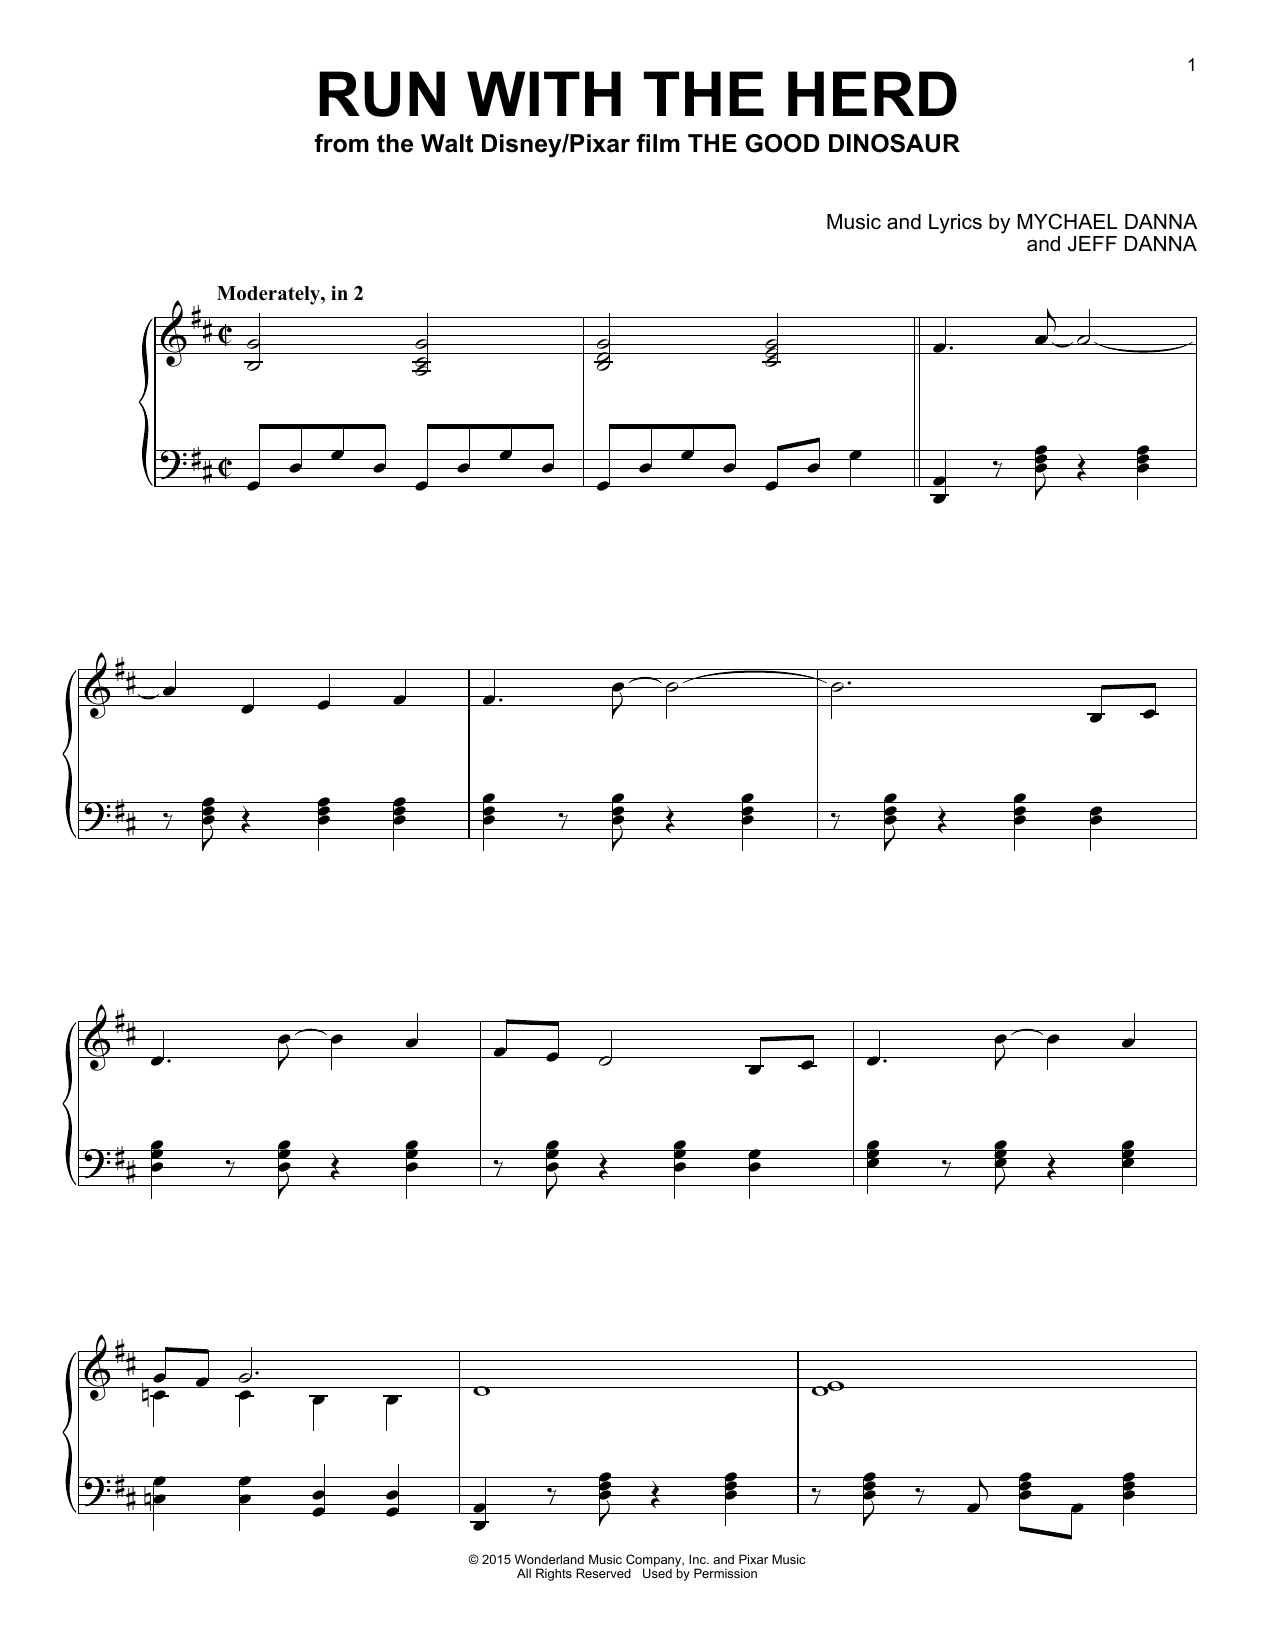 Mychael & Jeff Danna Run With The Herd sheet music notes and chords. Download Printable PDF.